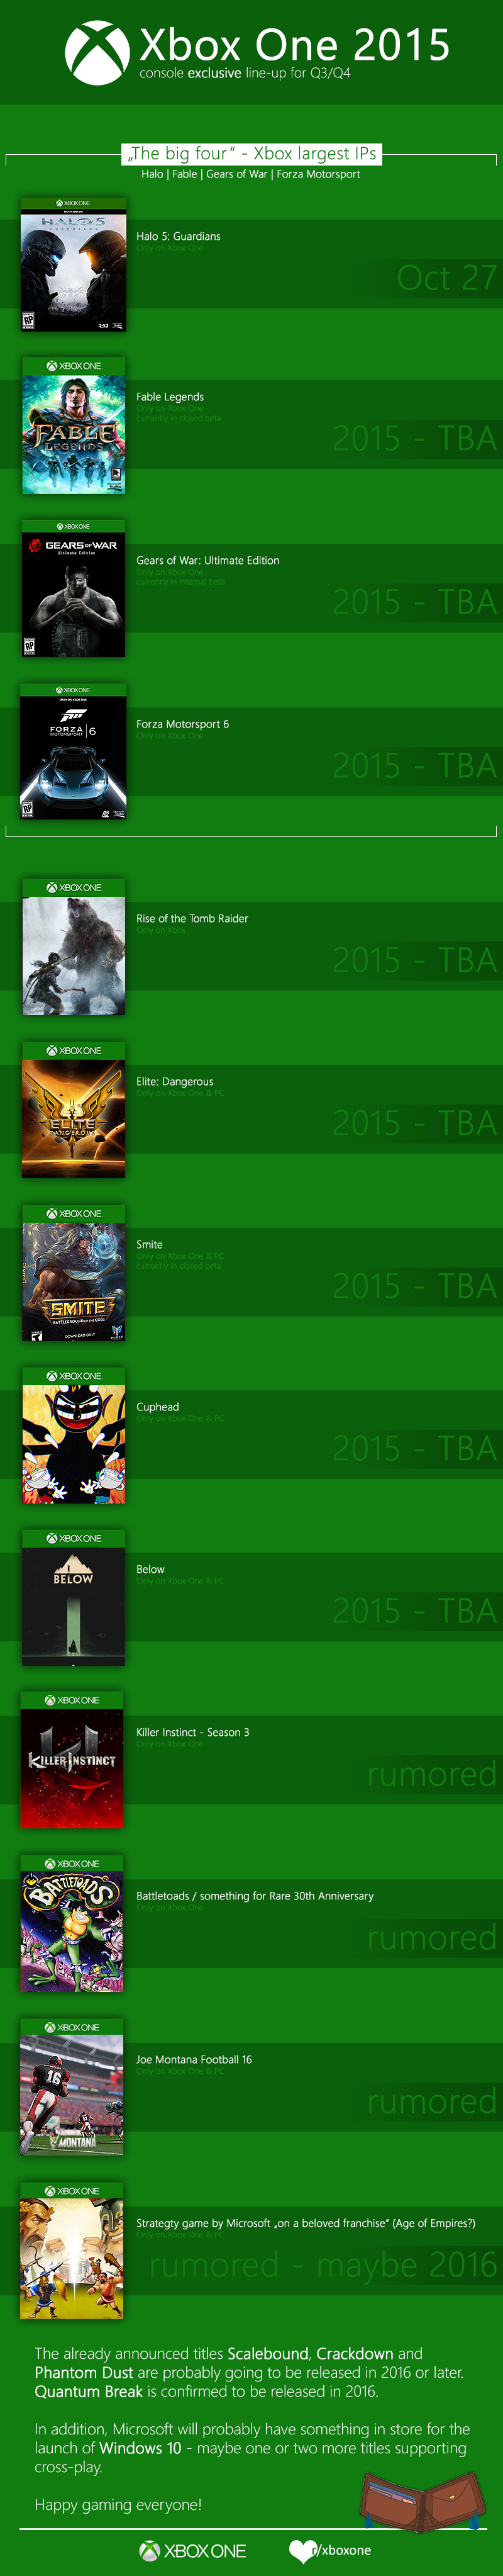 xbox_line_up_2015k6rze.png